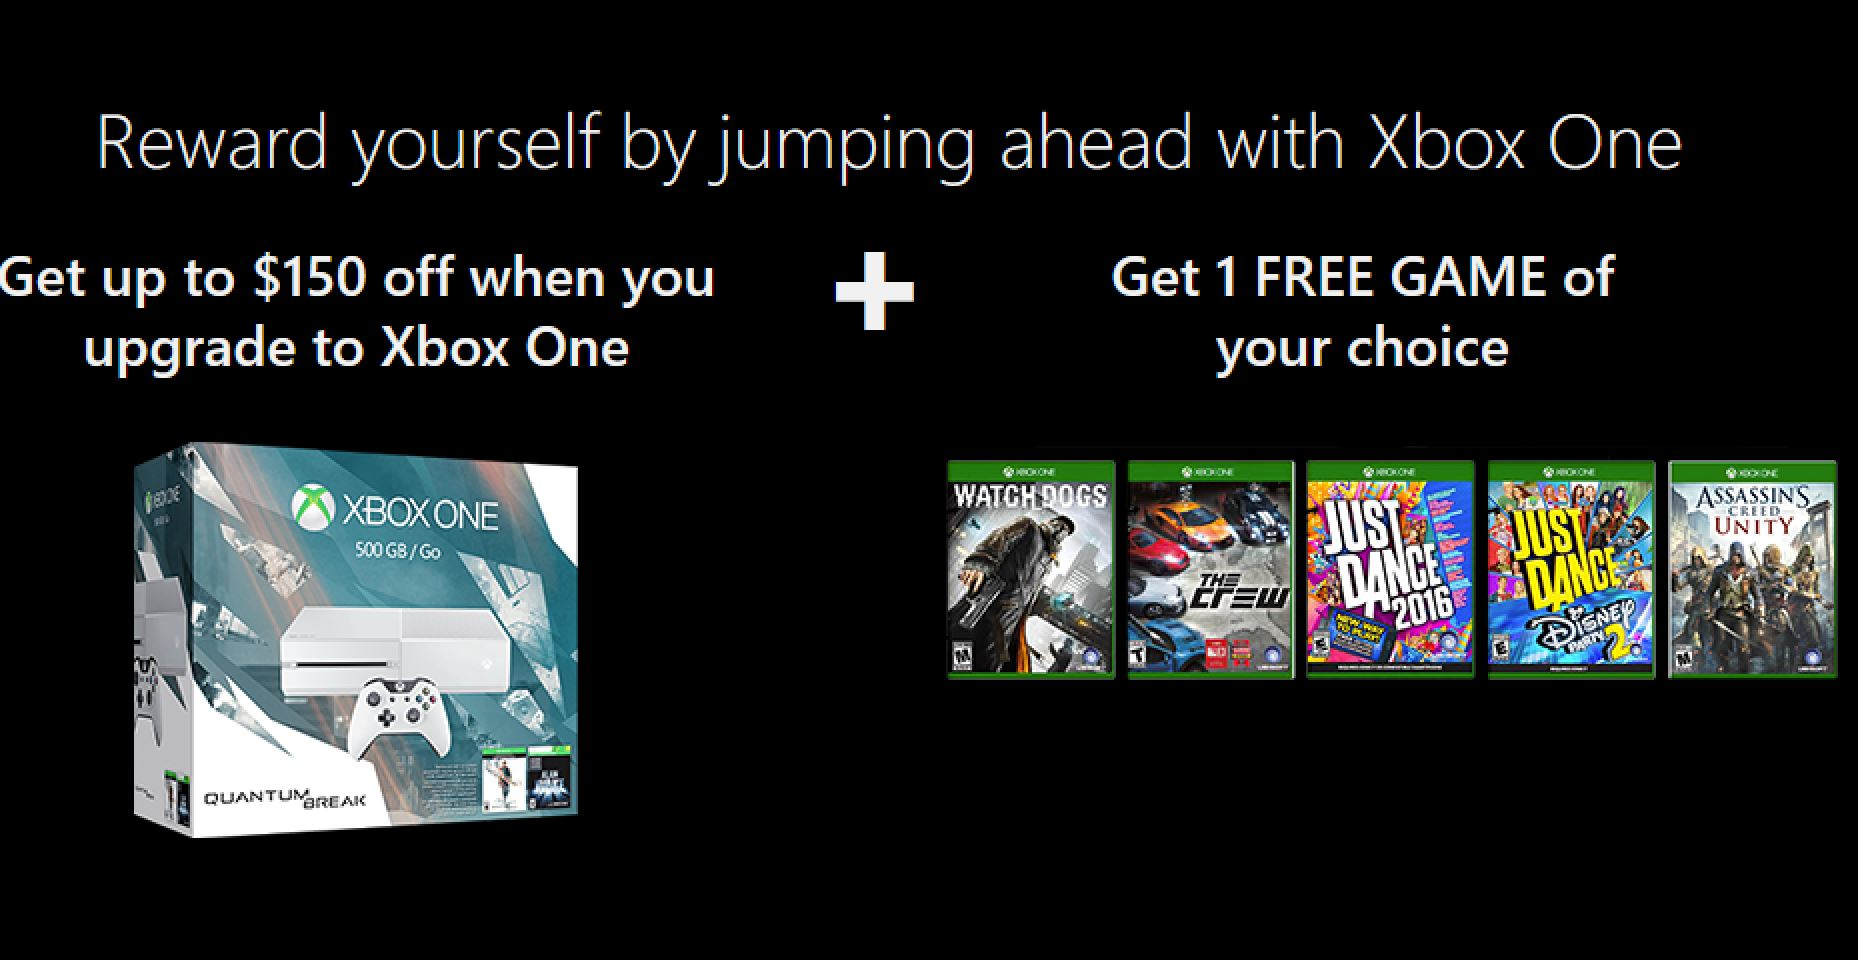 Deal Get Up To 150 Off The Xbox One And A Free Game Of